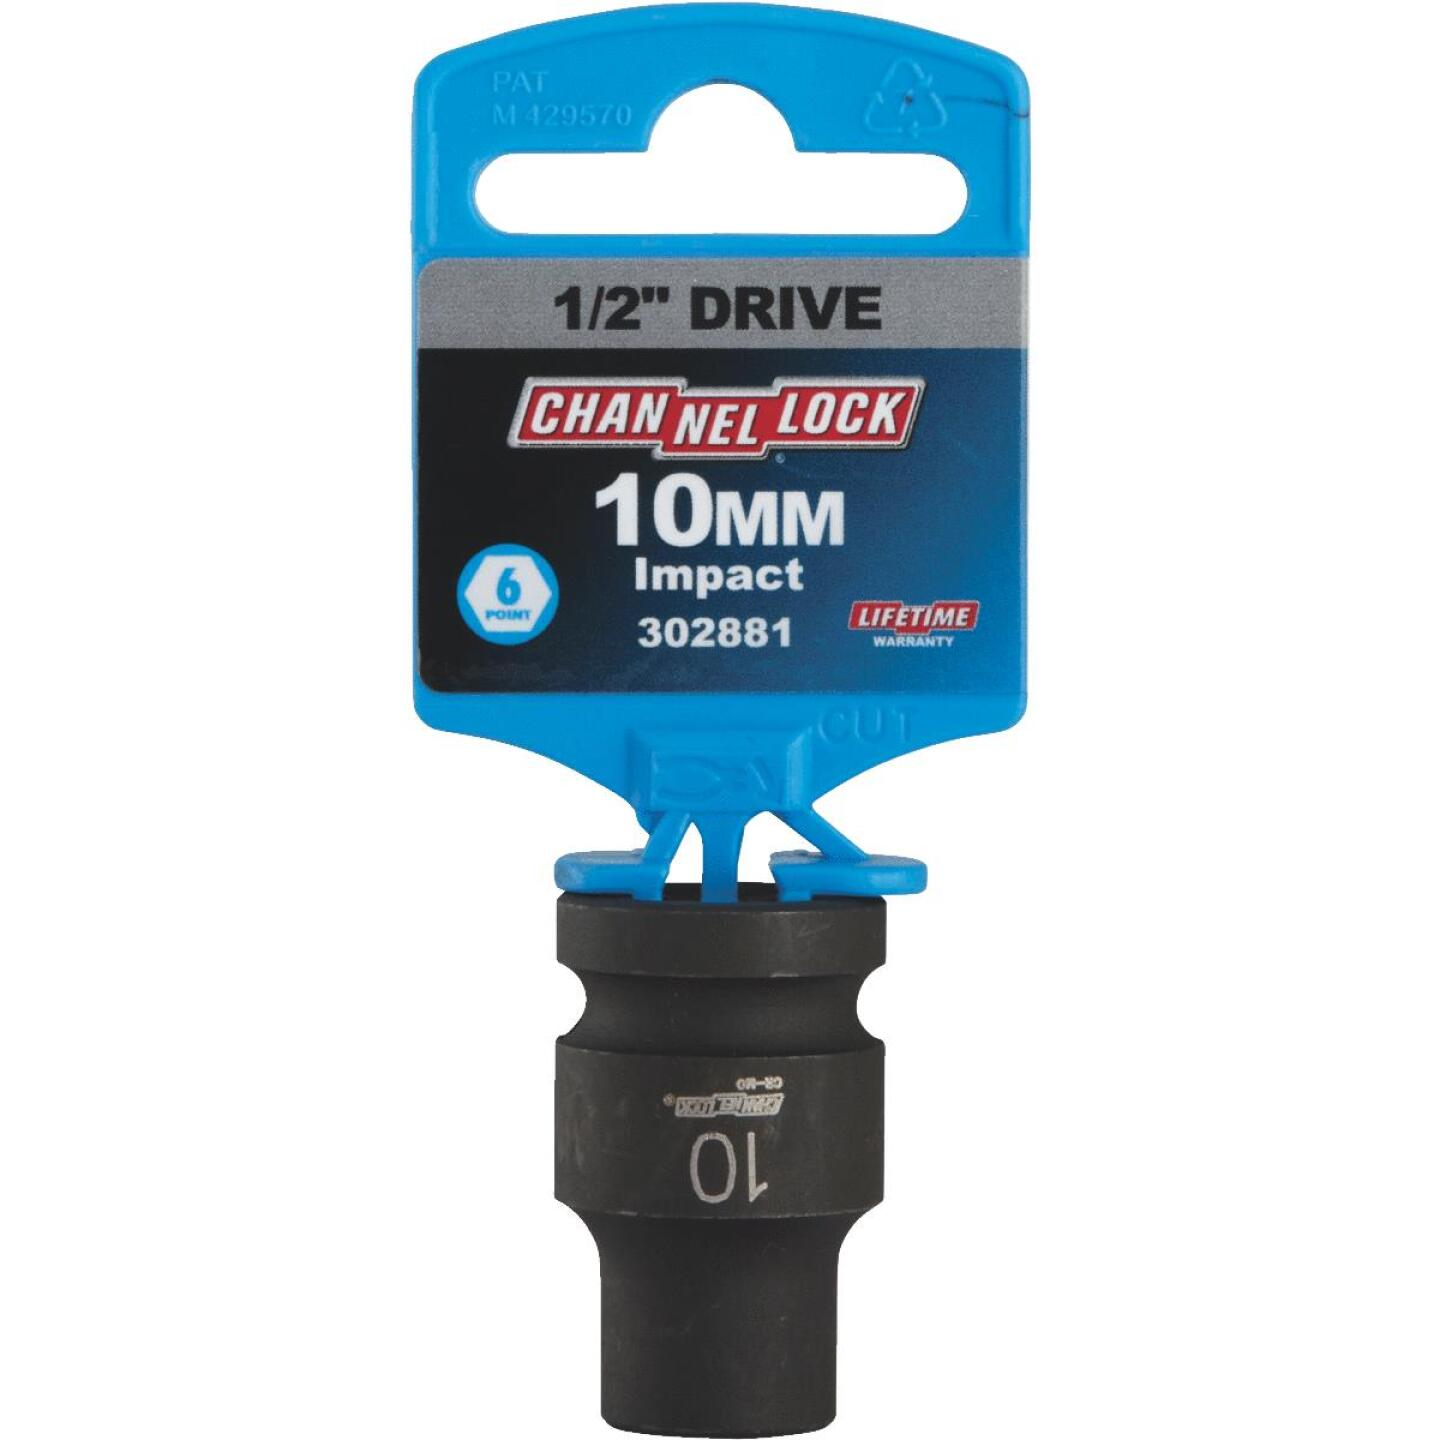 Channellock 1/2 In. Drive 10 mm 6-Point Shallow Metric Impact Socket Image 2